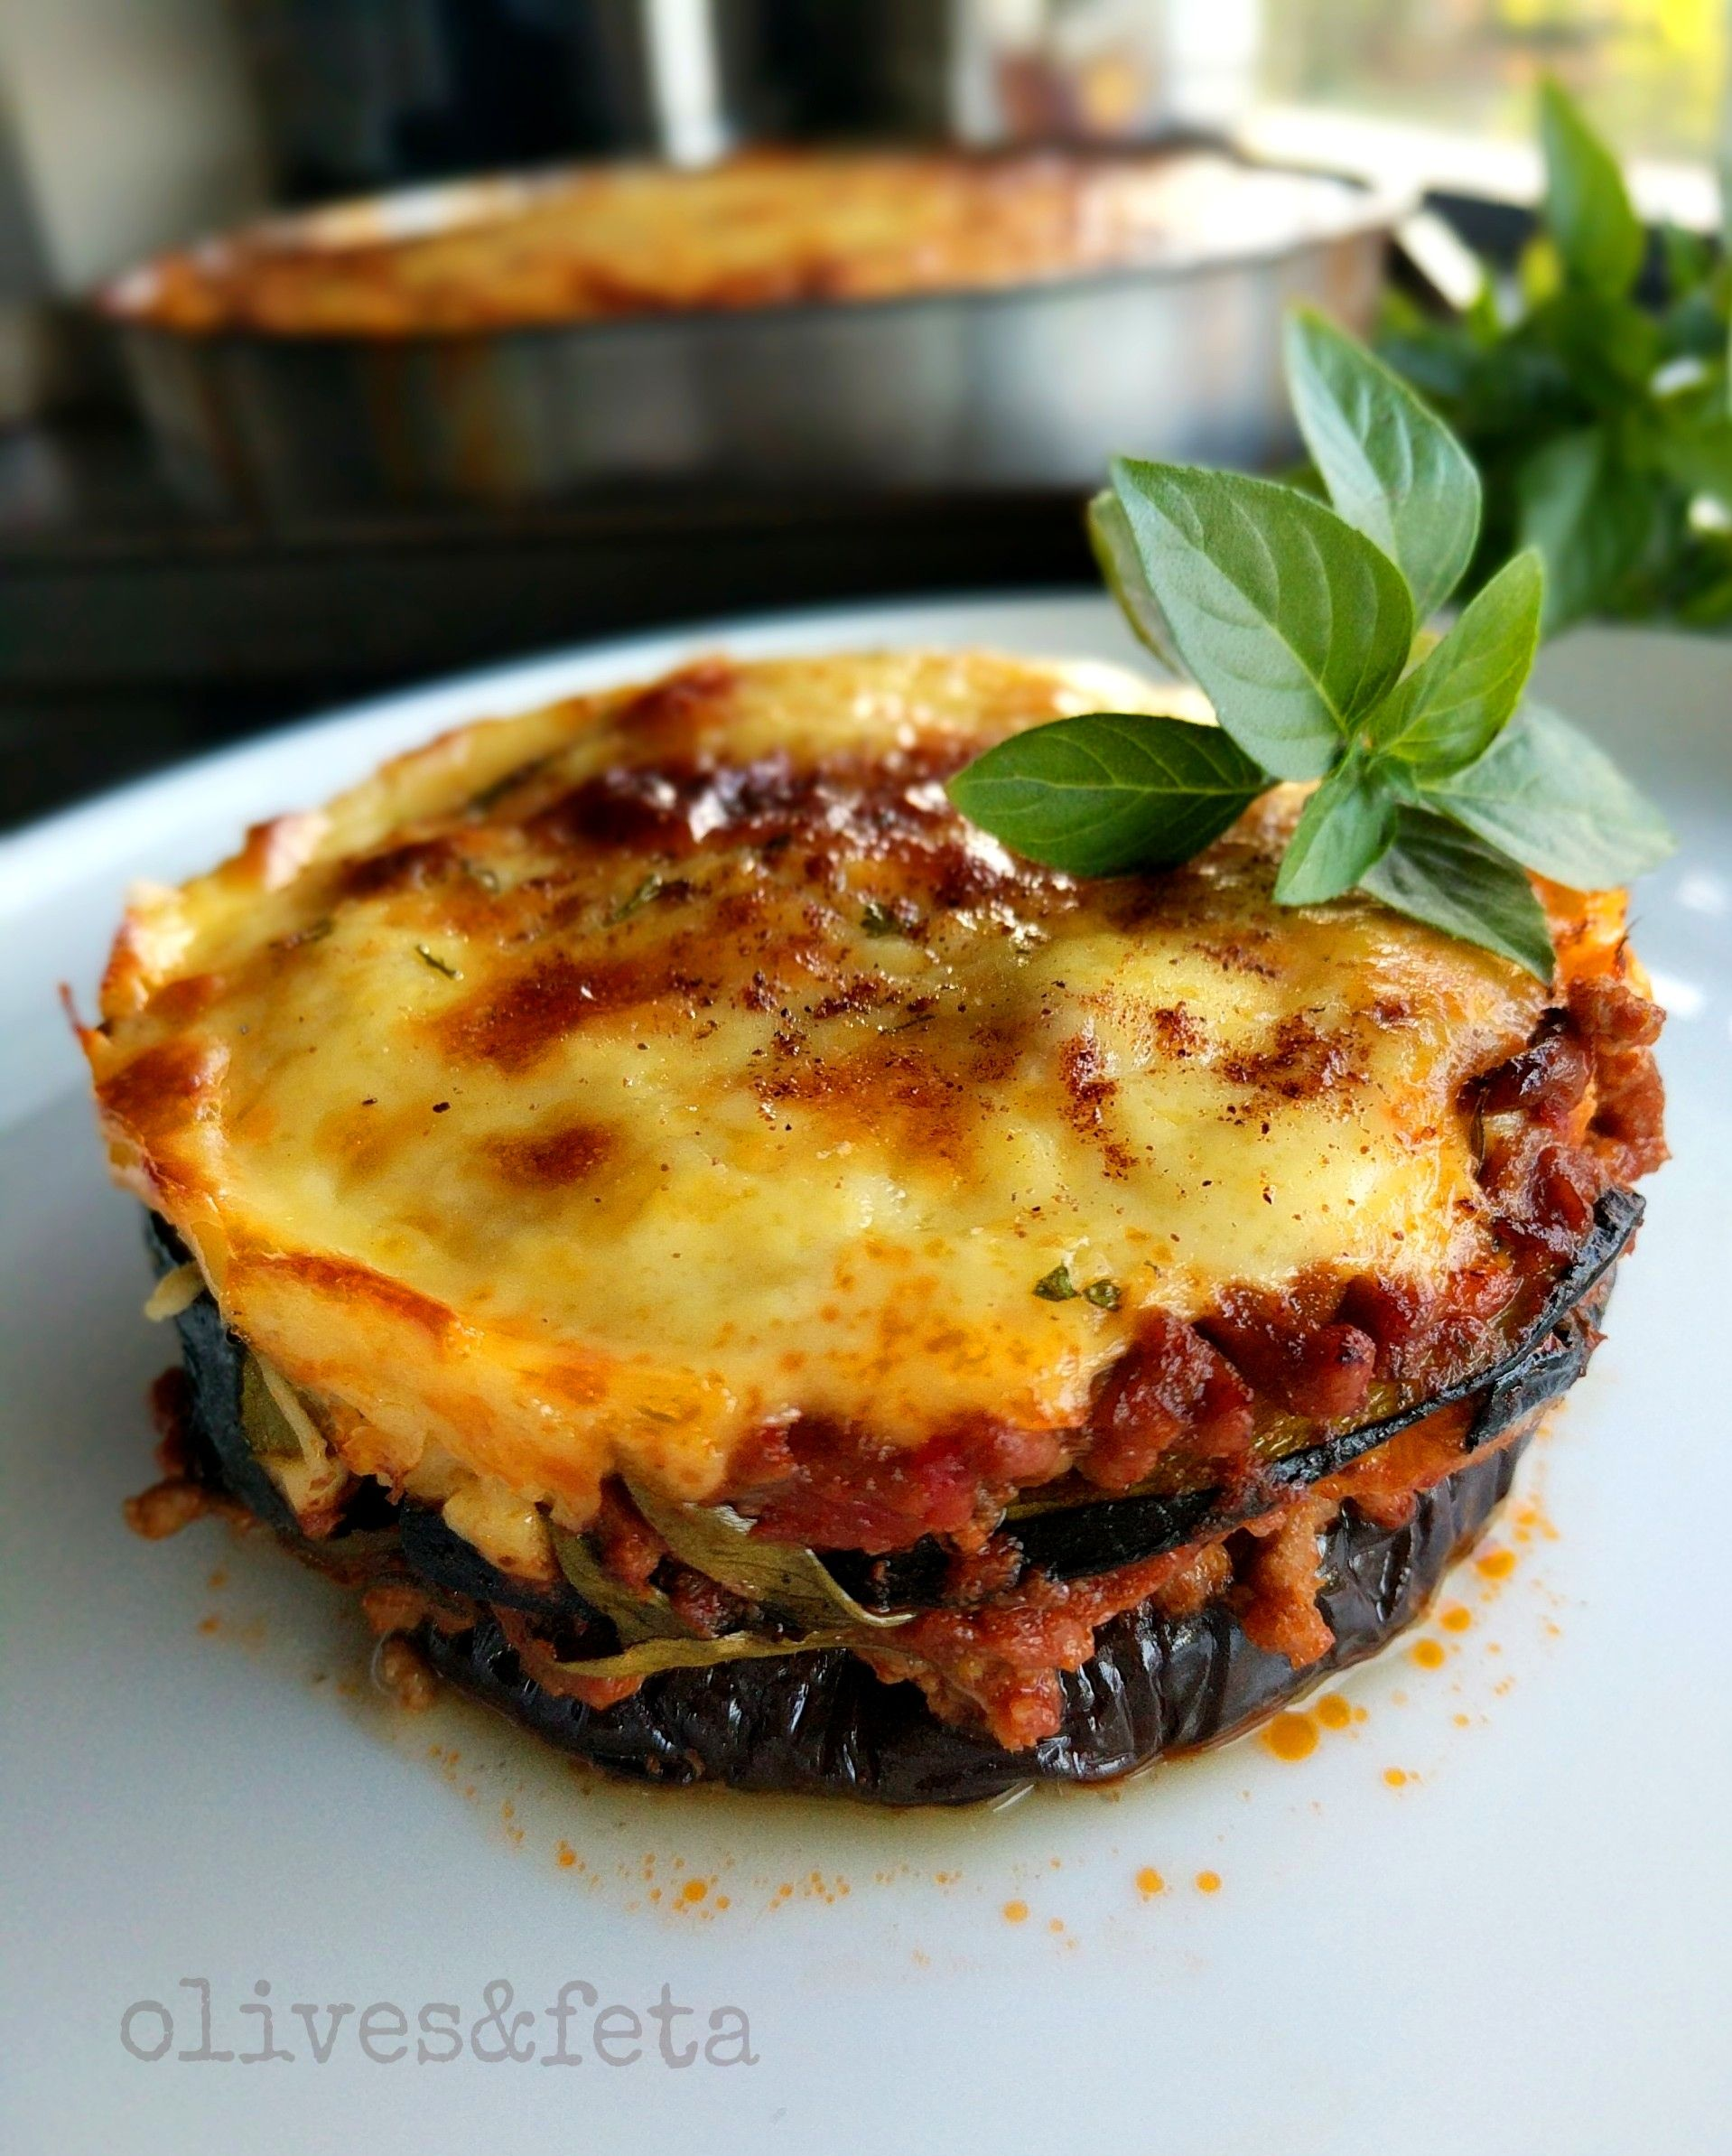 A Delicious Variation Of The Traditional Moussaka The Eggplant And Zucchini Layers Alternate With A Smooth Herbed Tomato And Moussaka Recipe Moussaka Recipes